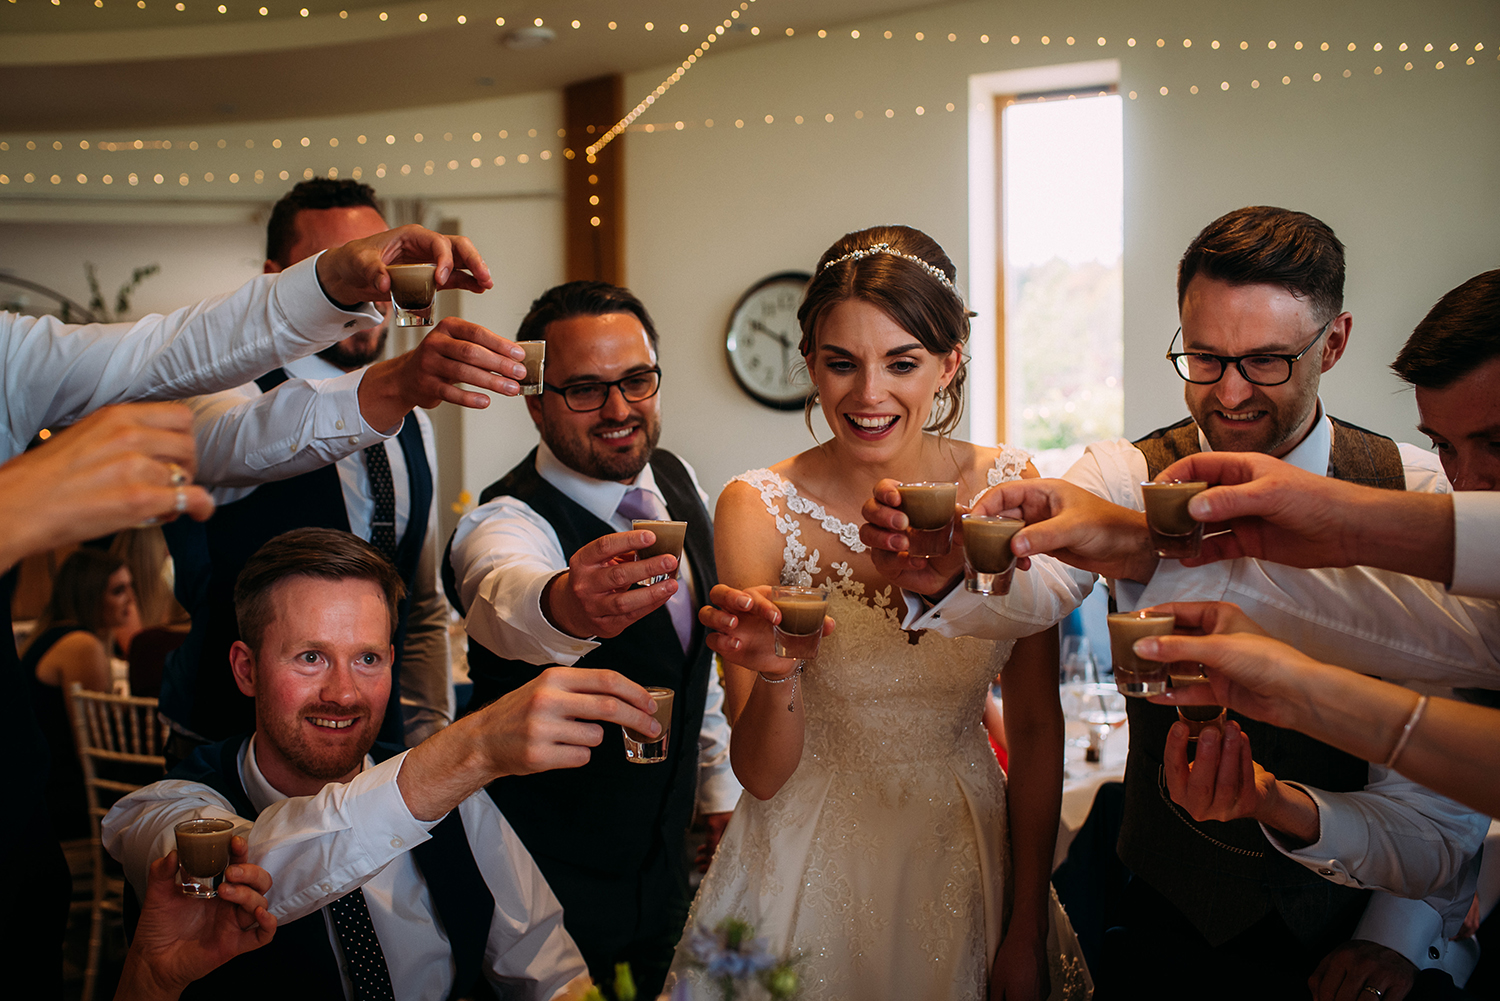 bride groom and friends doing shots together